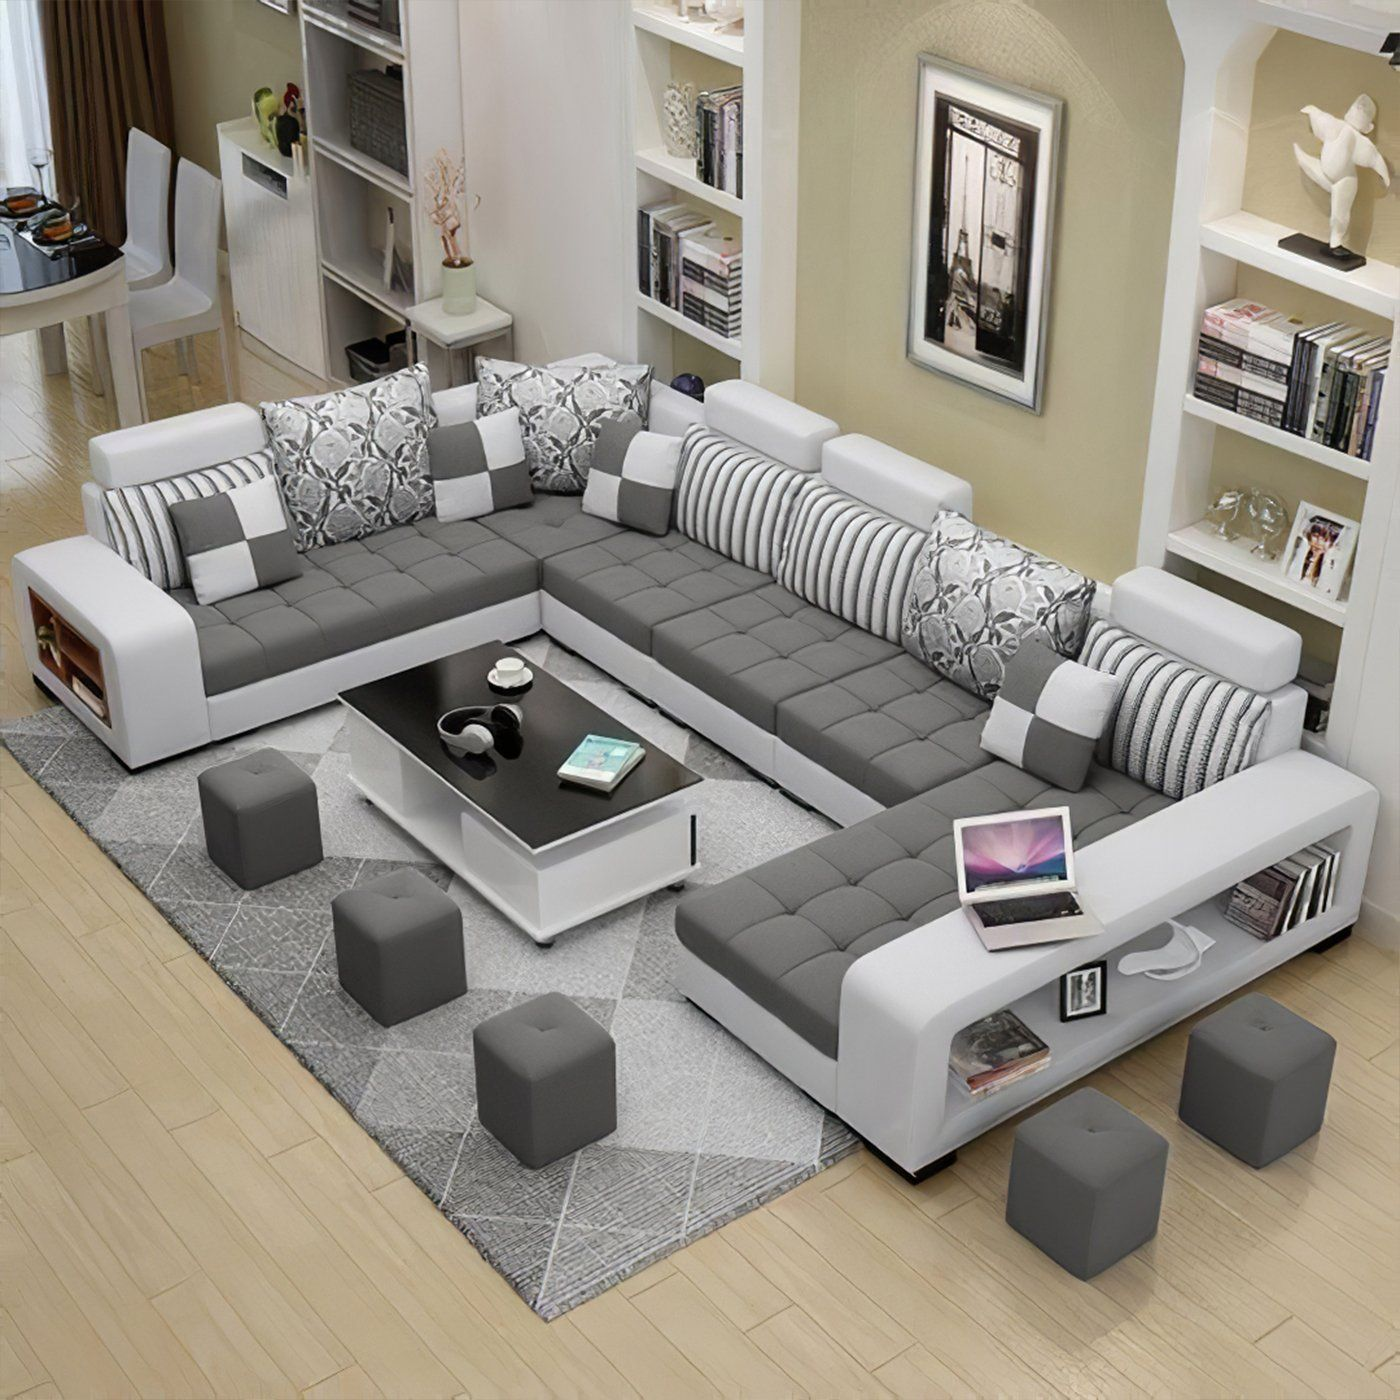 Selena Dark Grey Light Grey Sectional With Chaise Furniture Design Living Room Luxury Sofa Design Living Room Sofa Design